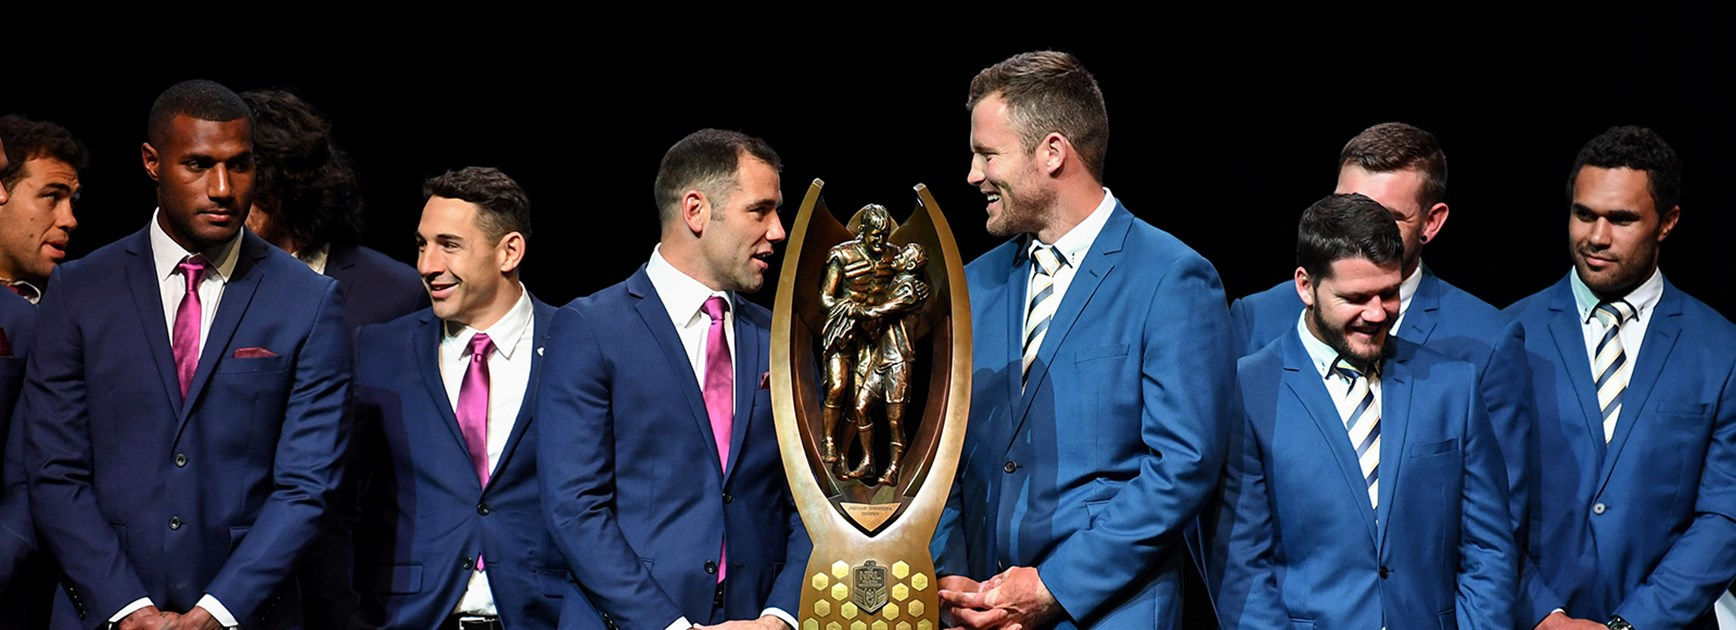 The Melbourne Storm and North Queensland Cowboys are set to face off in the 2017 NRL Telstra Grand Final.